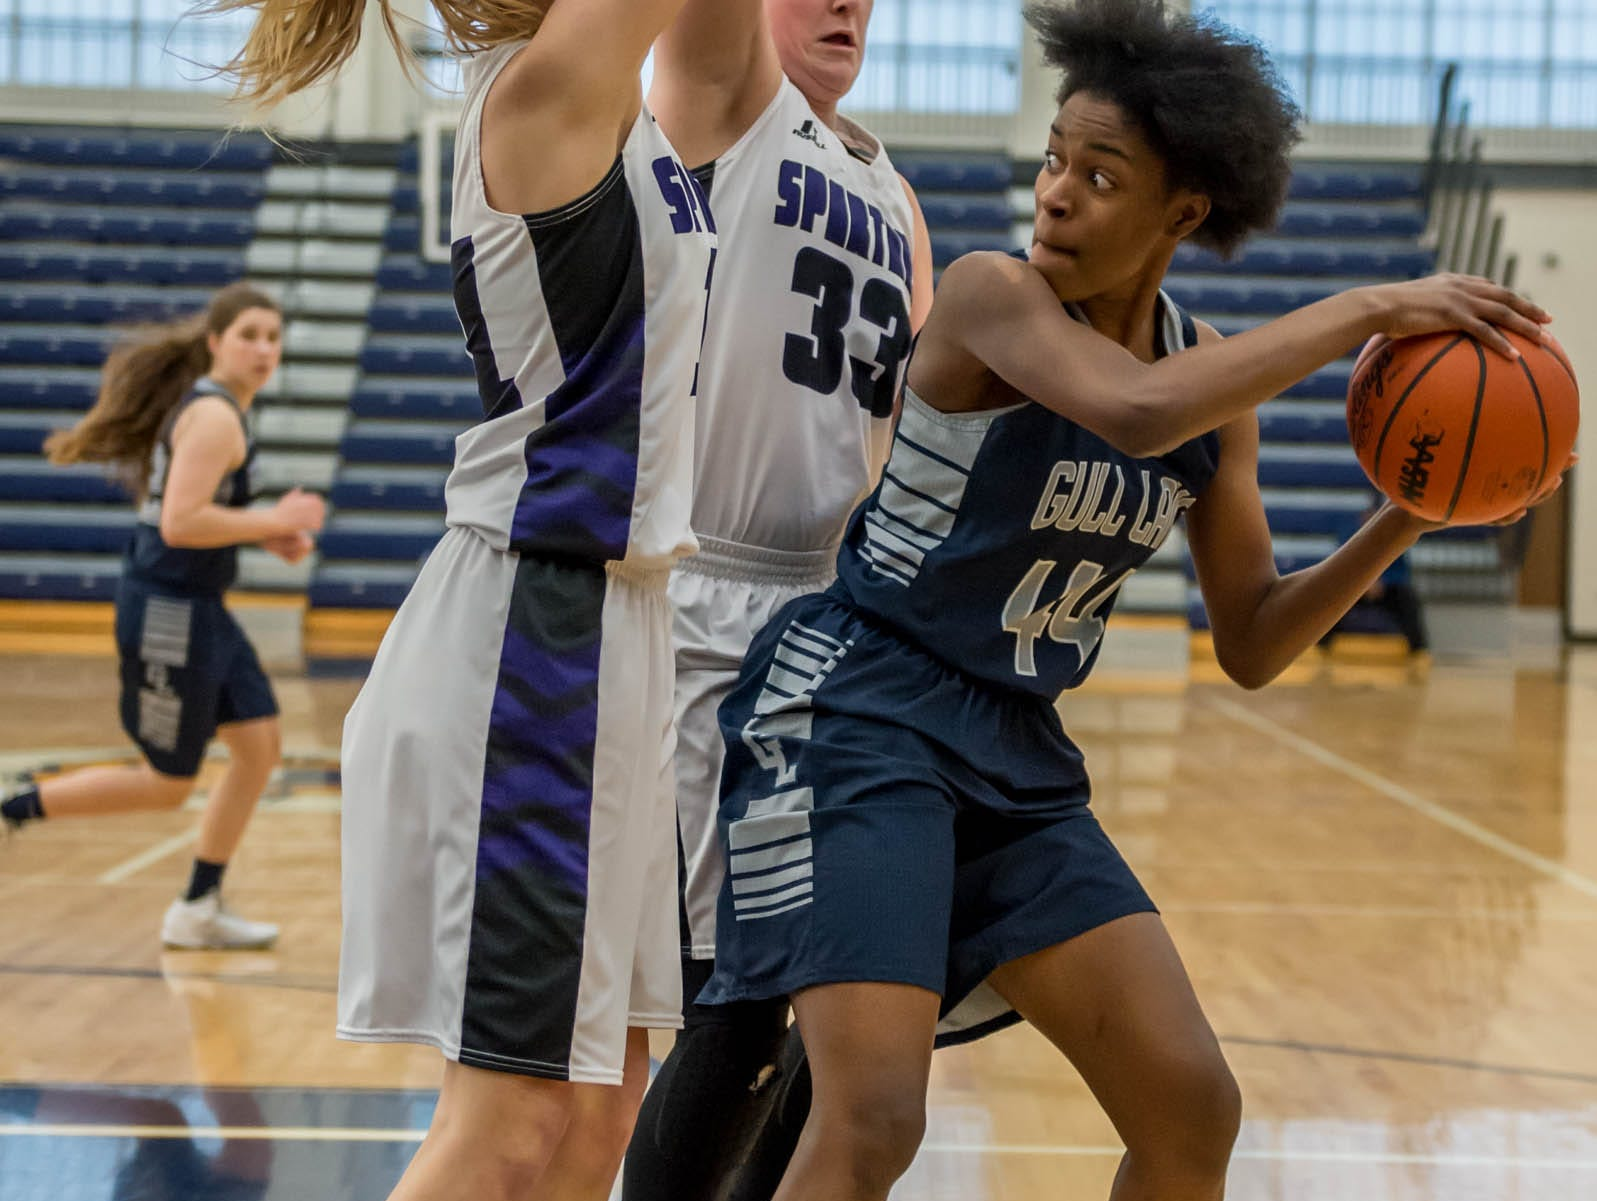 Gull Lake's Imani Morrow (44) looks to pass while being guarded by Lakeview defenders during district game Wednesday evening.